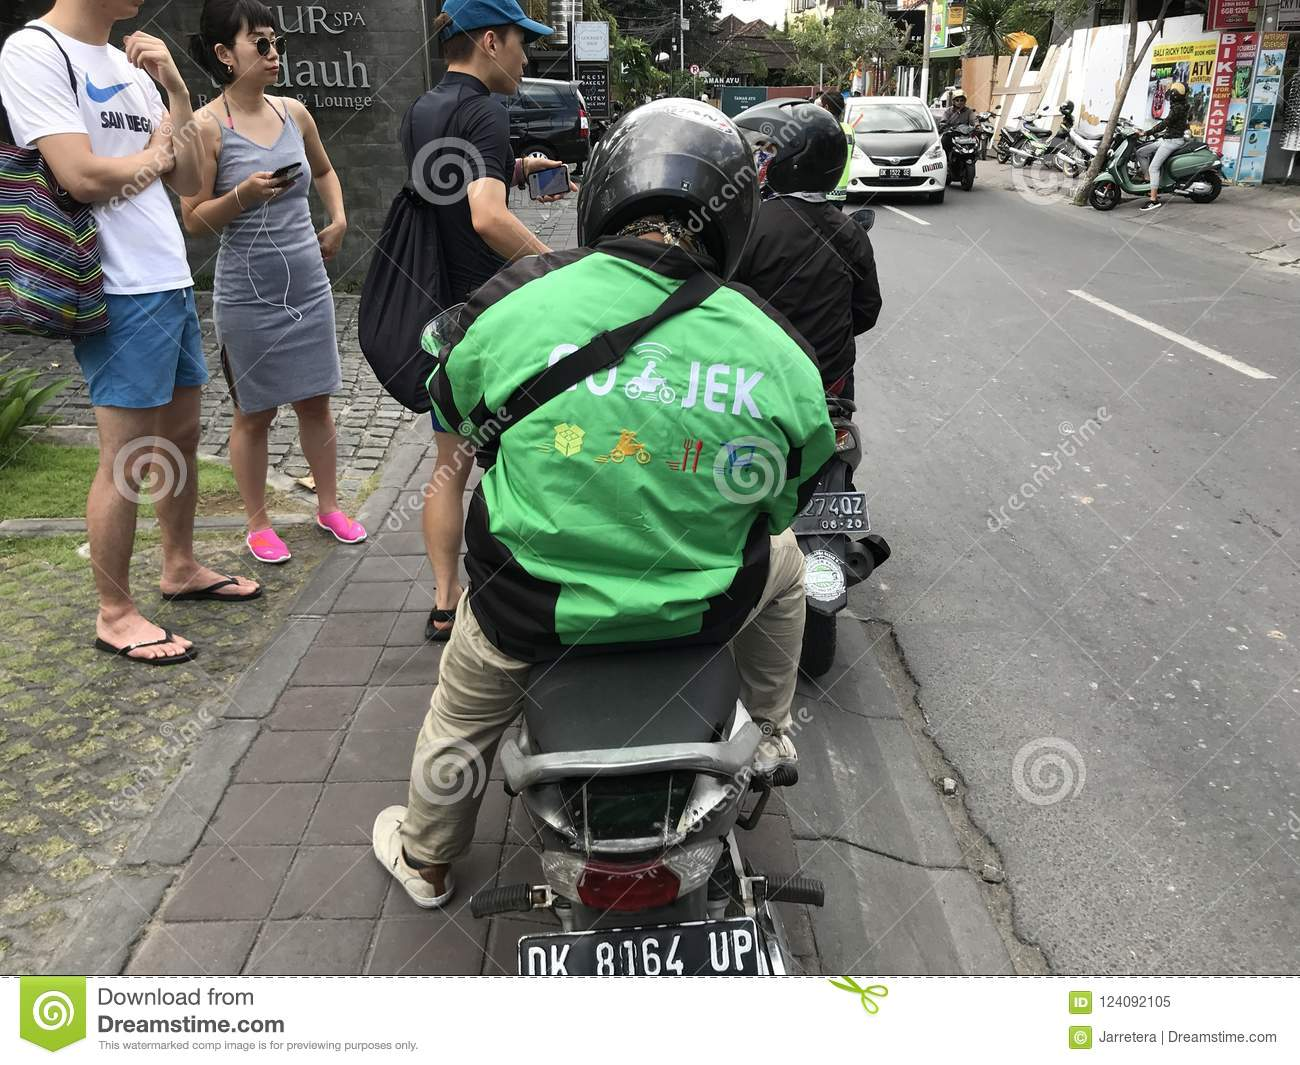 Go-jek motor taxi driver editorial image  Image of helmet